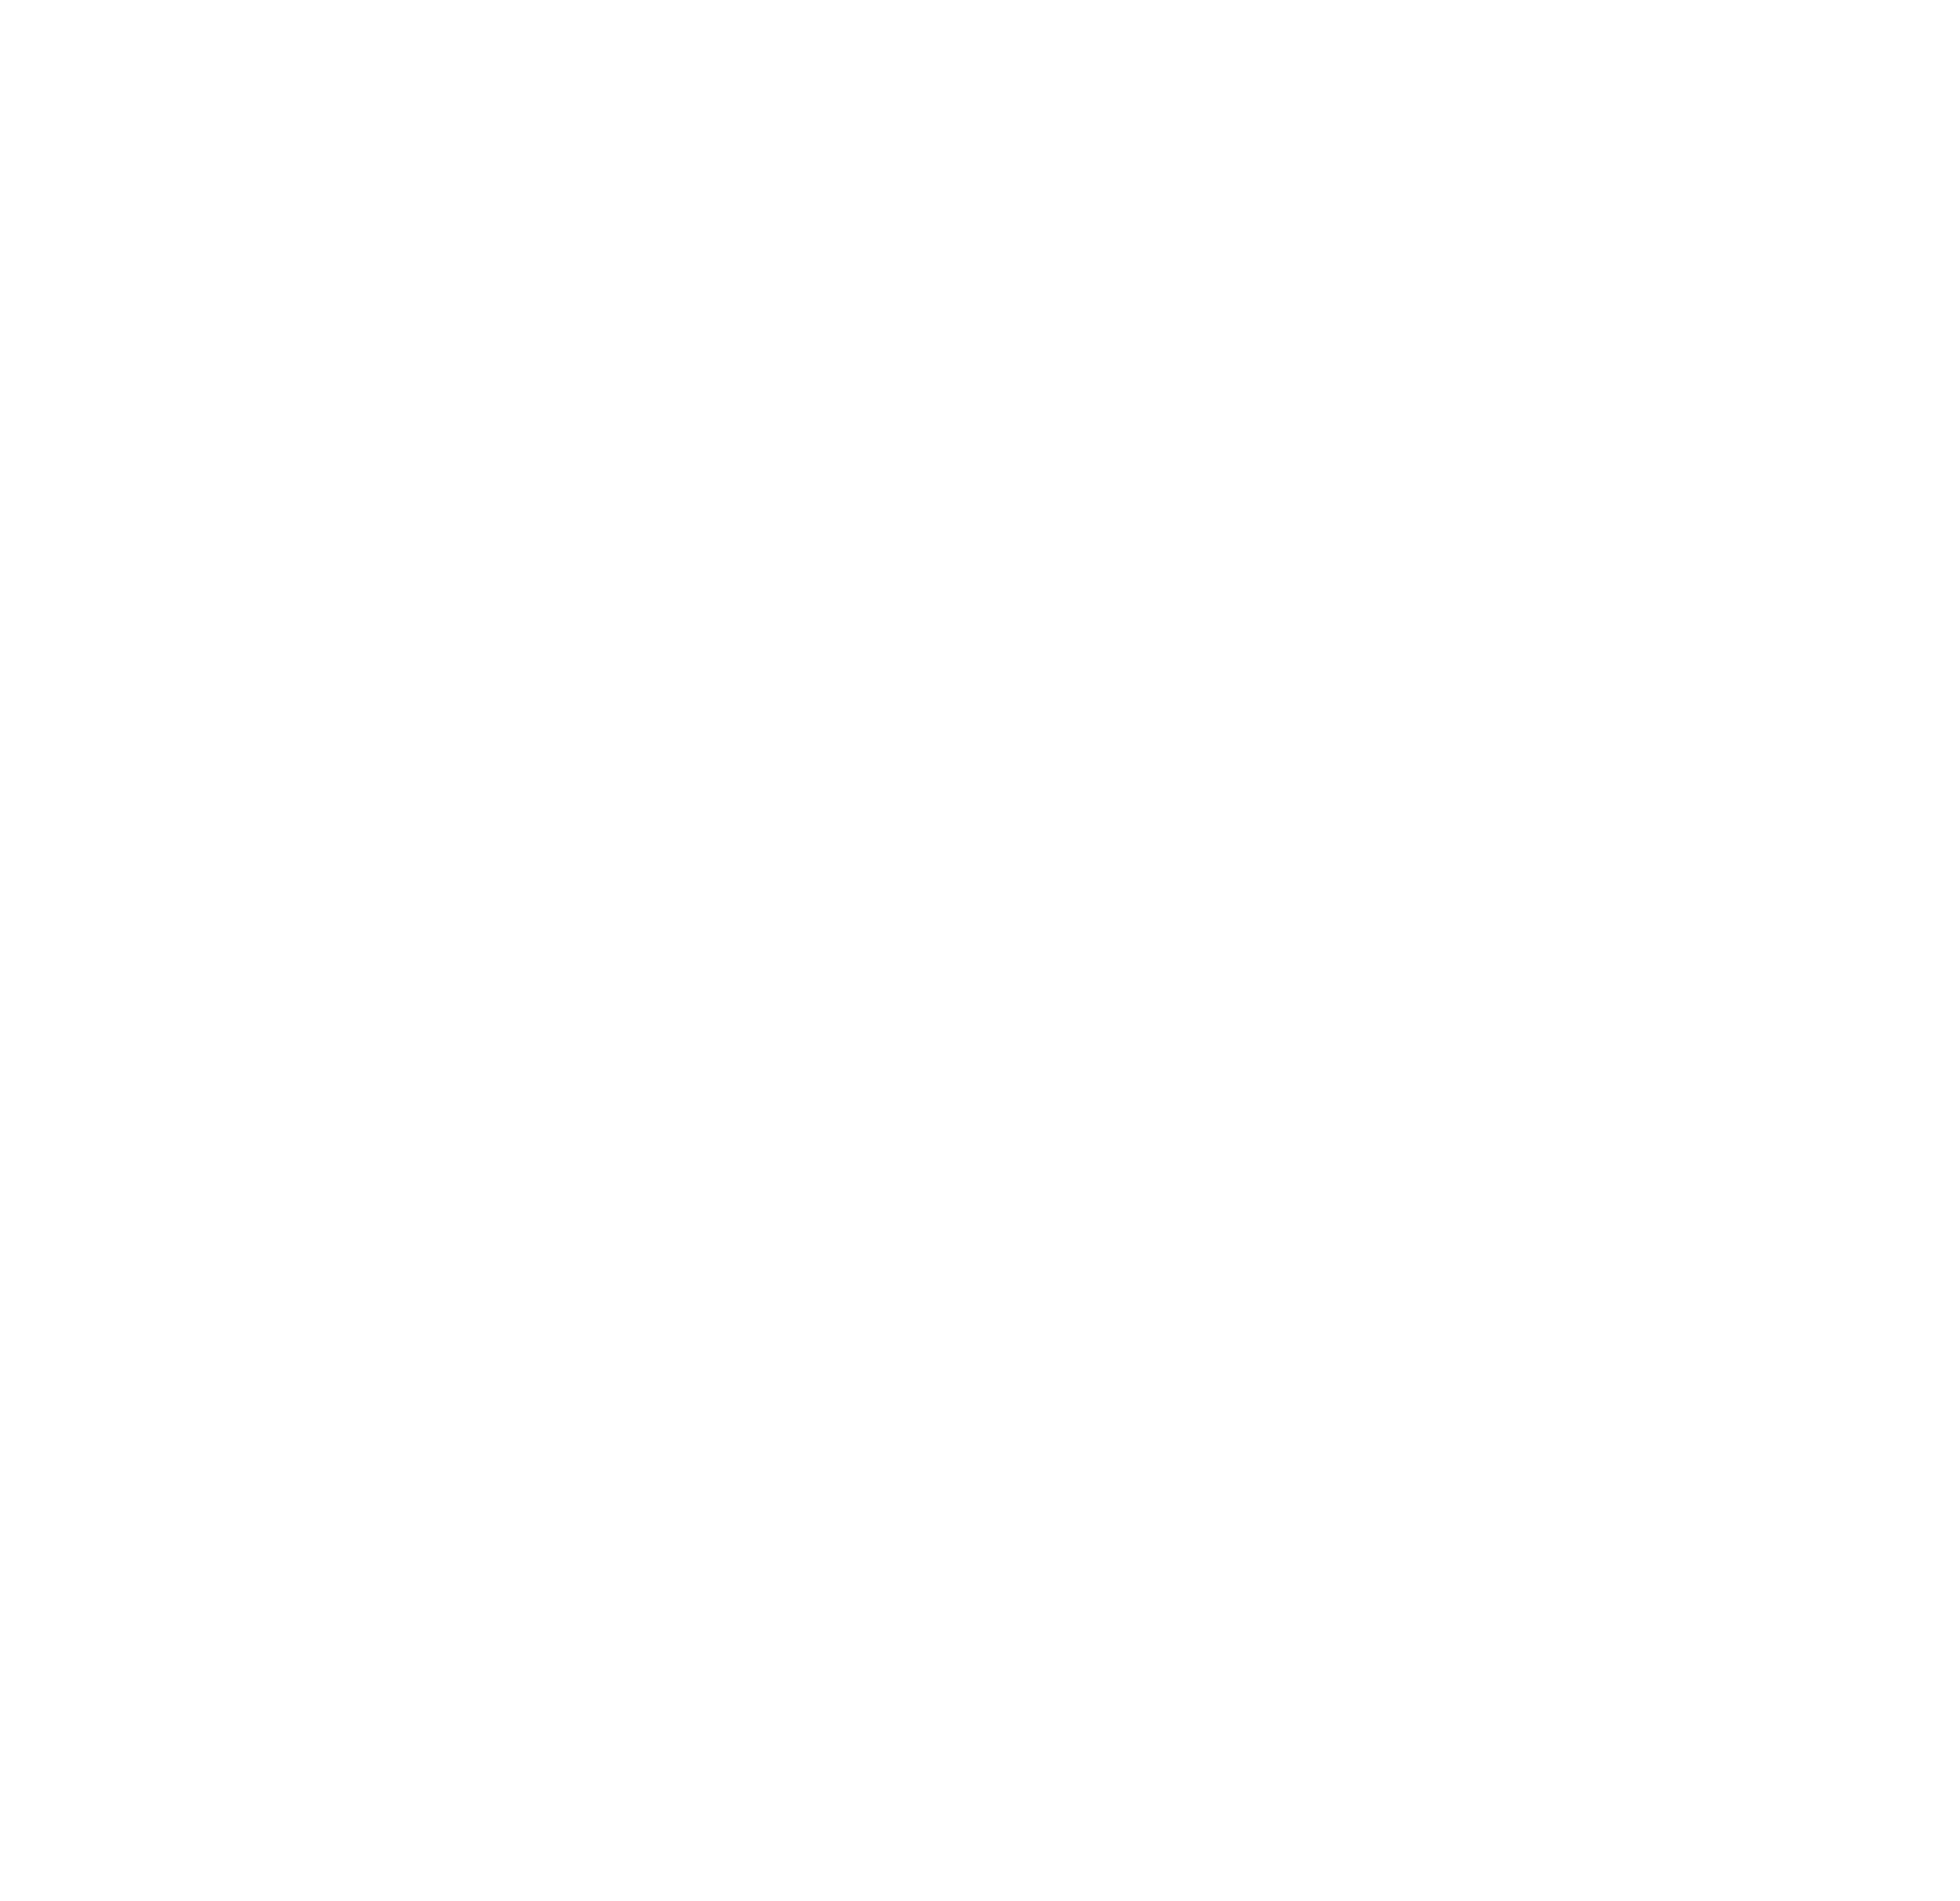 Private_Division_Logo_Transparant_White (1).png